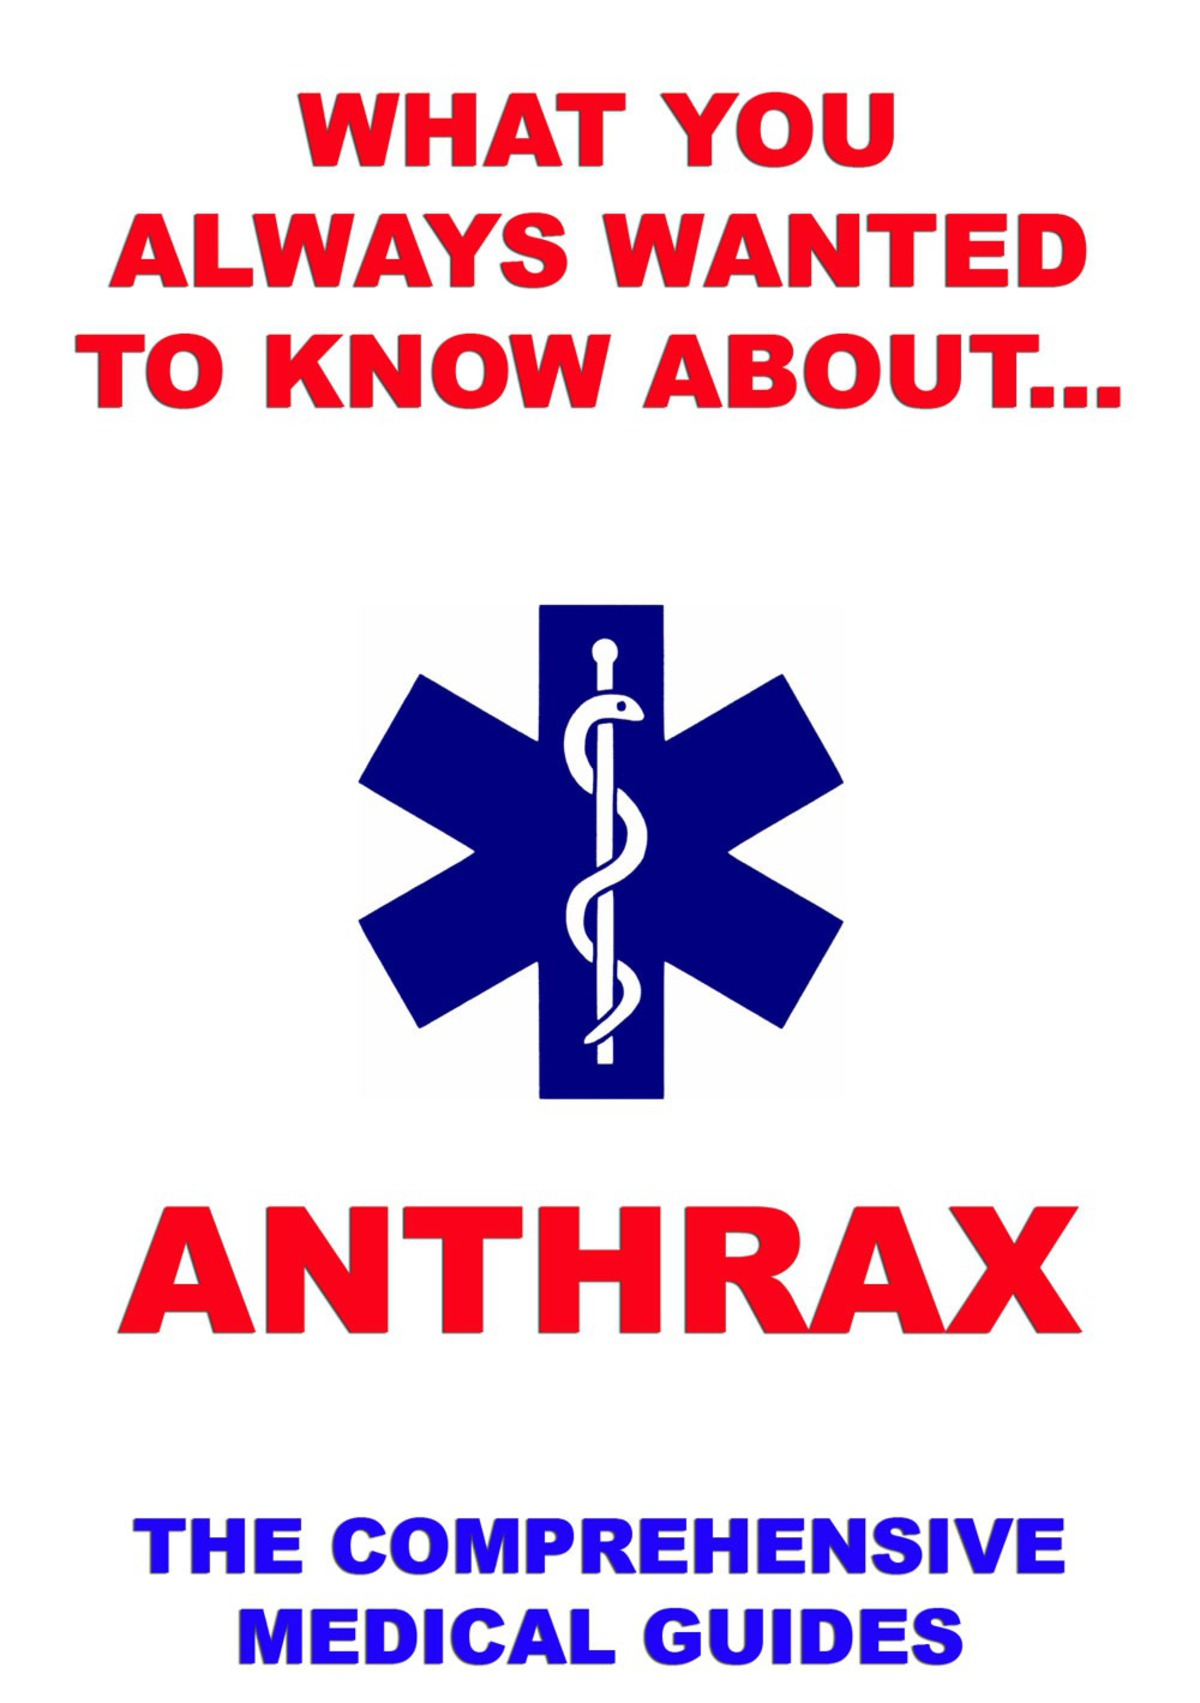 What You Always Wanted To Know About Anthrax: The Comprehensive Medical Guides By: